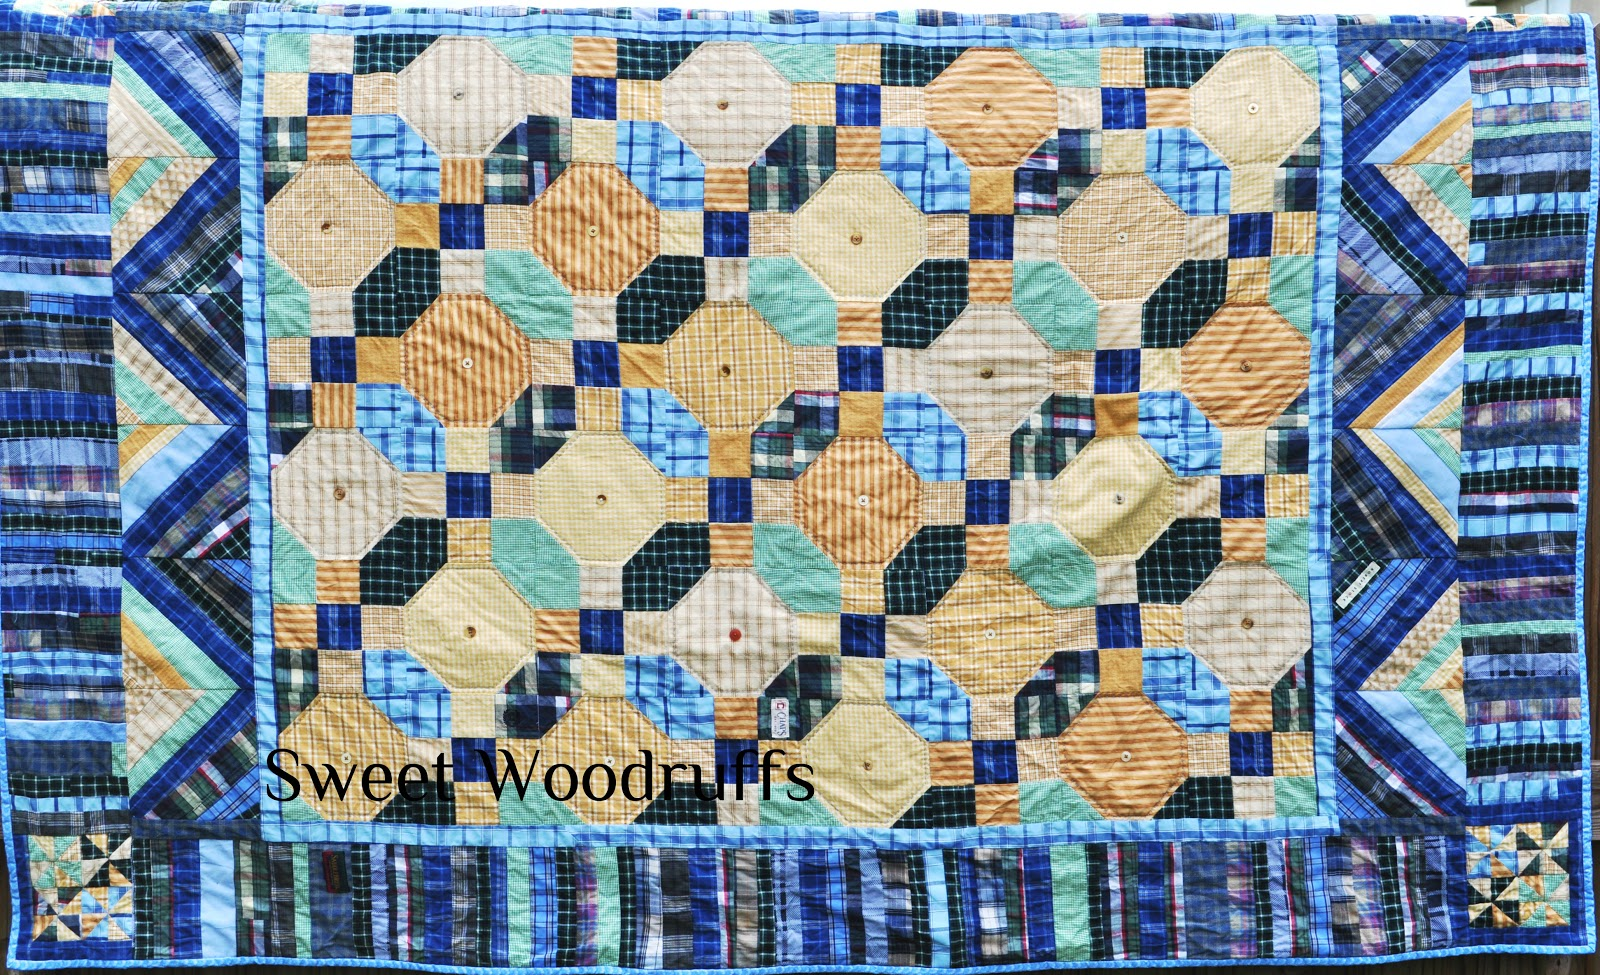 Sweet Woodruffs: Memorial Quilt out of Men s Shirts